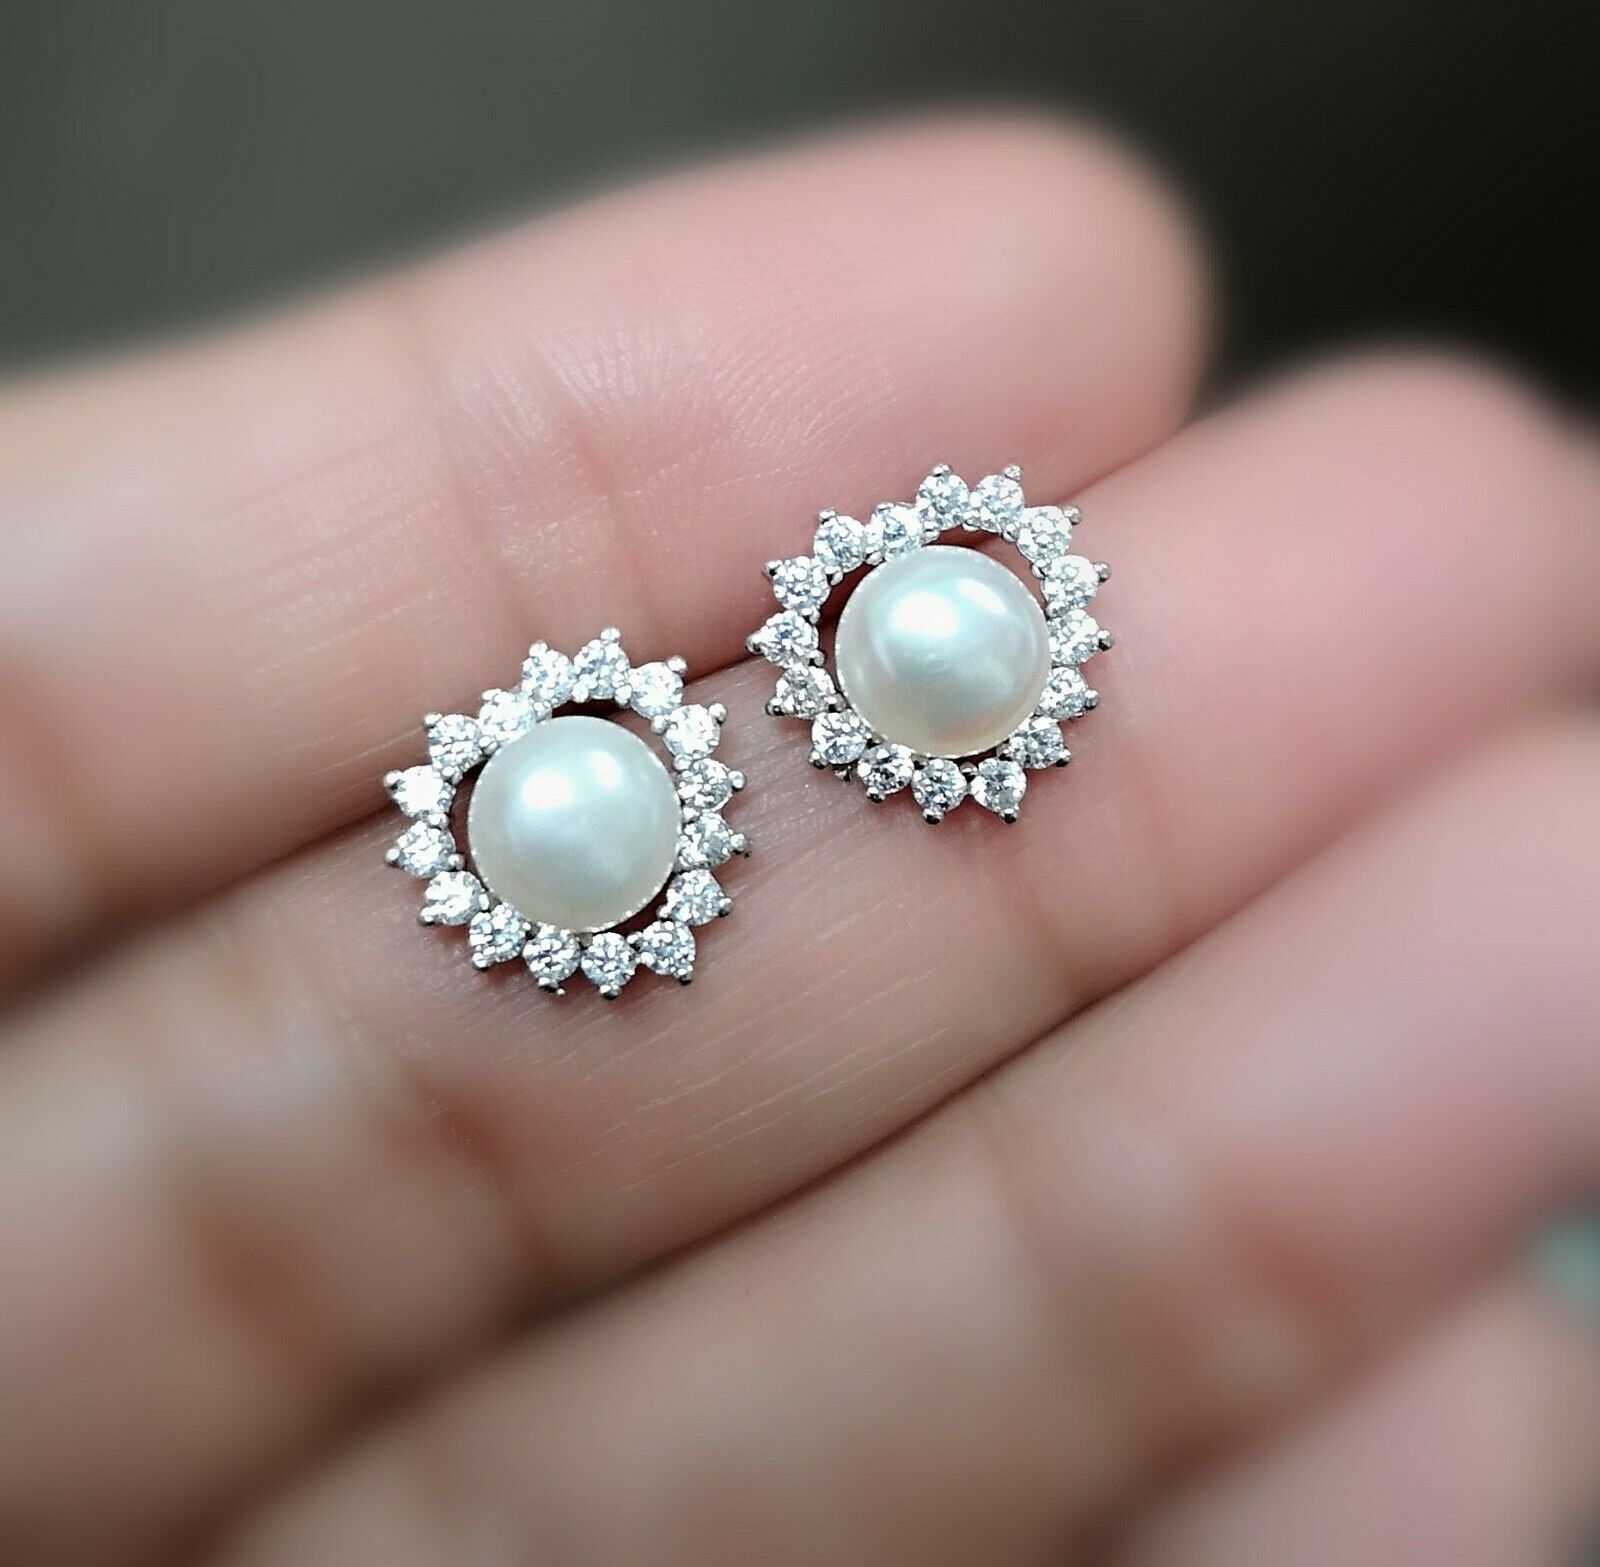 1Ct Diamond Earring with Pearl Womens Stud Earrings 14k White Gold over